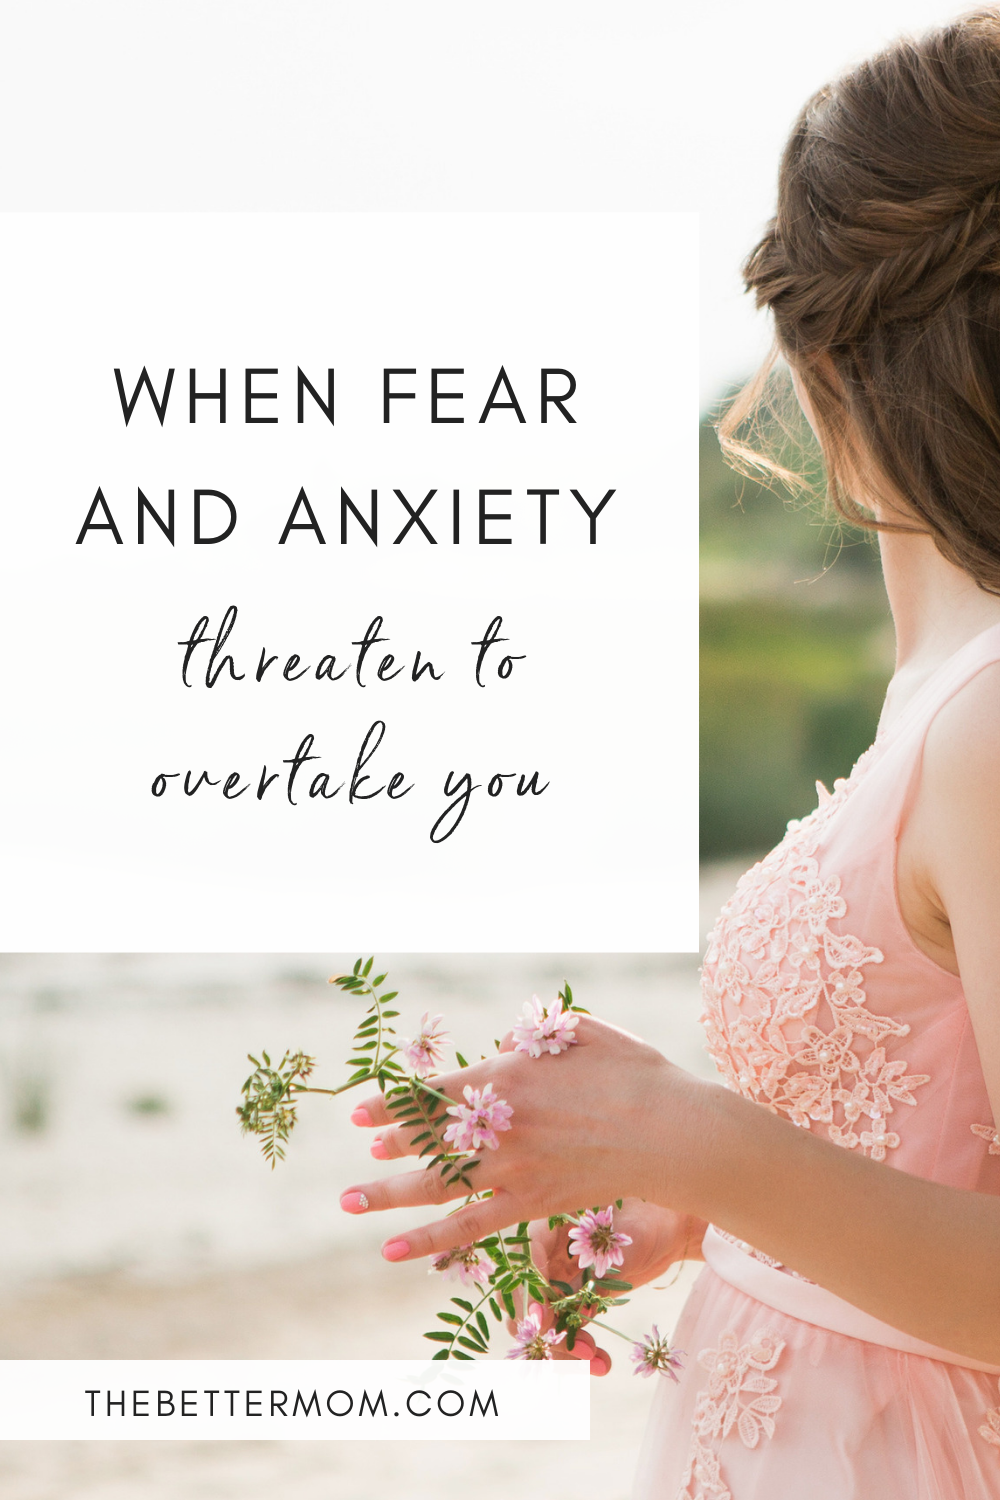 What are we to do when we feel like fear and anxiety might over take us? Well, if we look at the examples in Scripture, the answer might surprise us! Discover God's heart and promise for you in struggle today, and learn how he delights in your response.